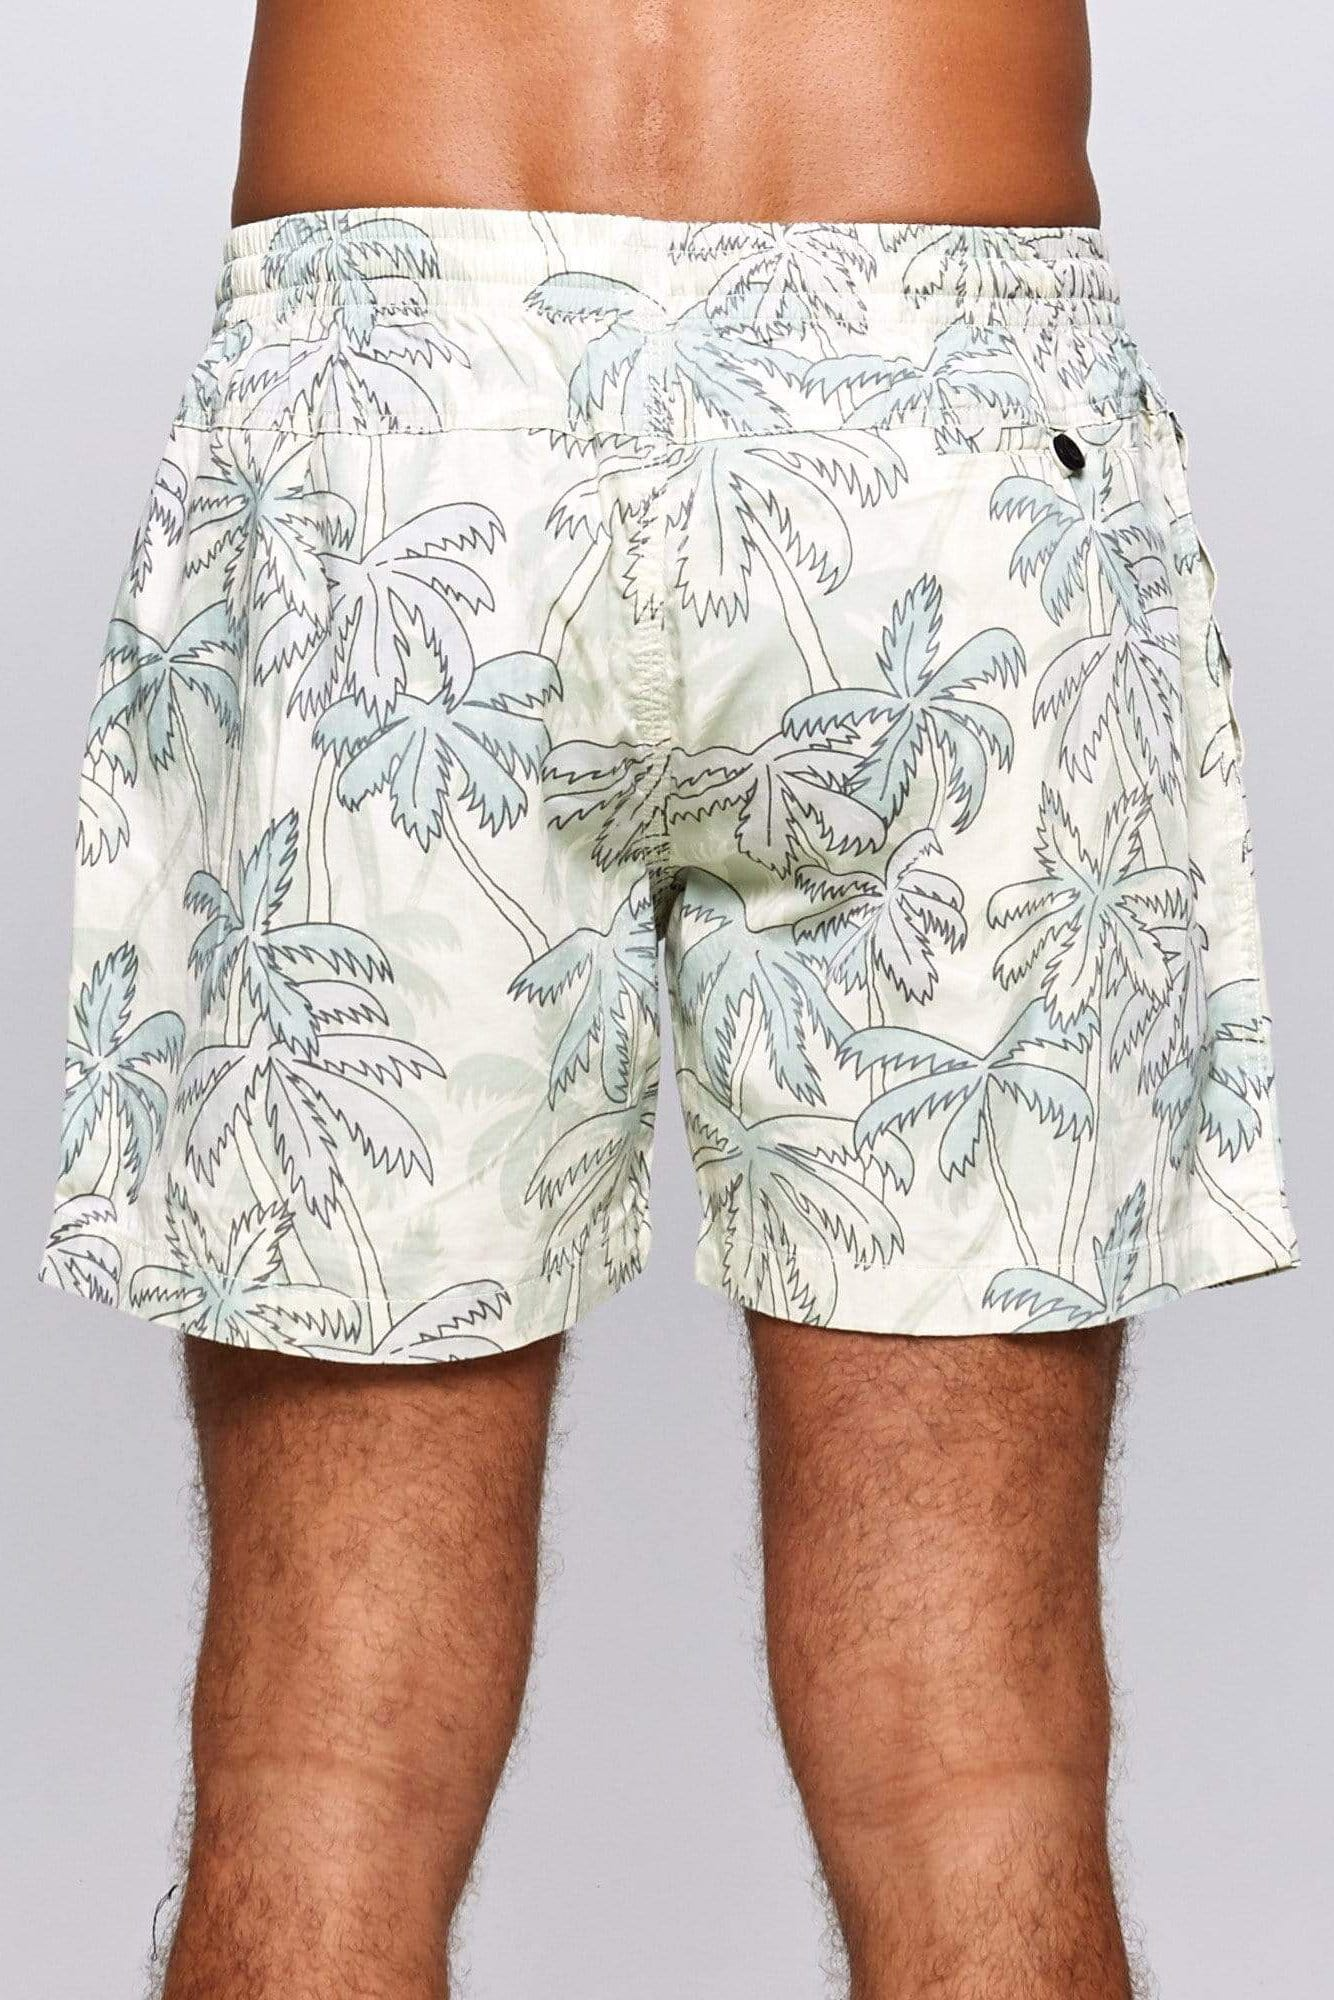 Retro Palm Short - Man Short - LOST IN PARADISE